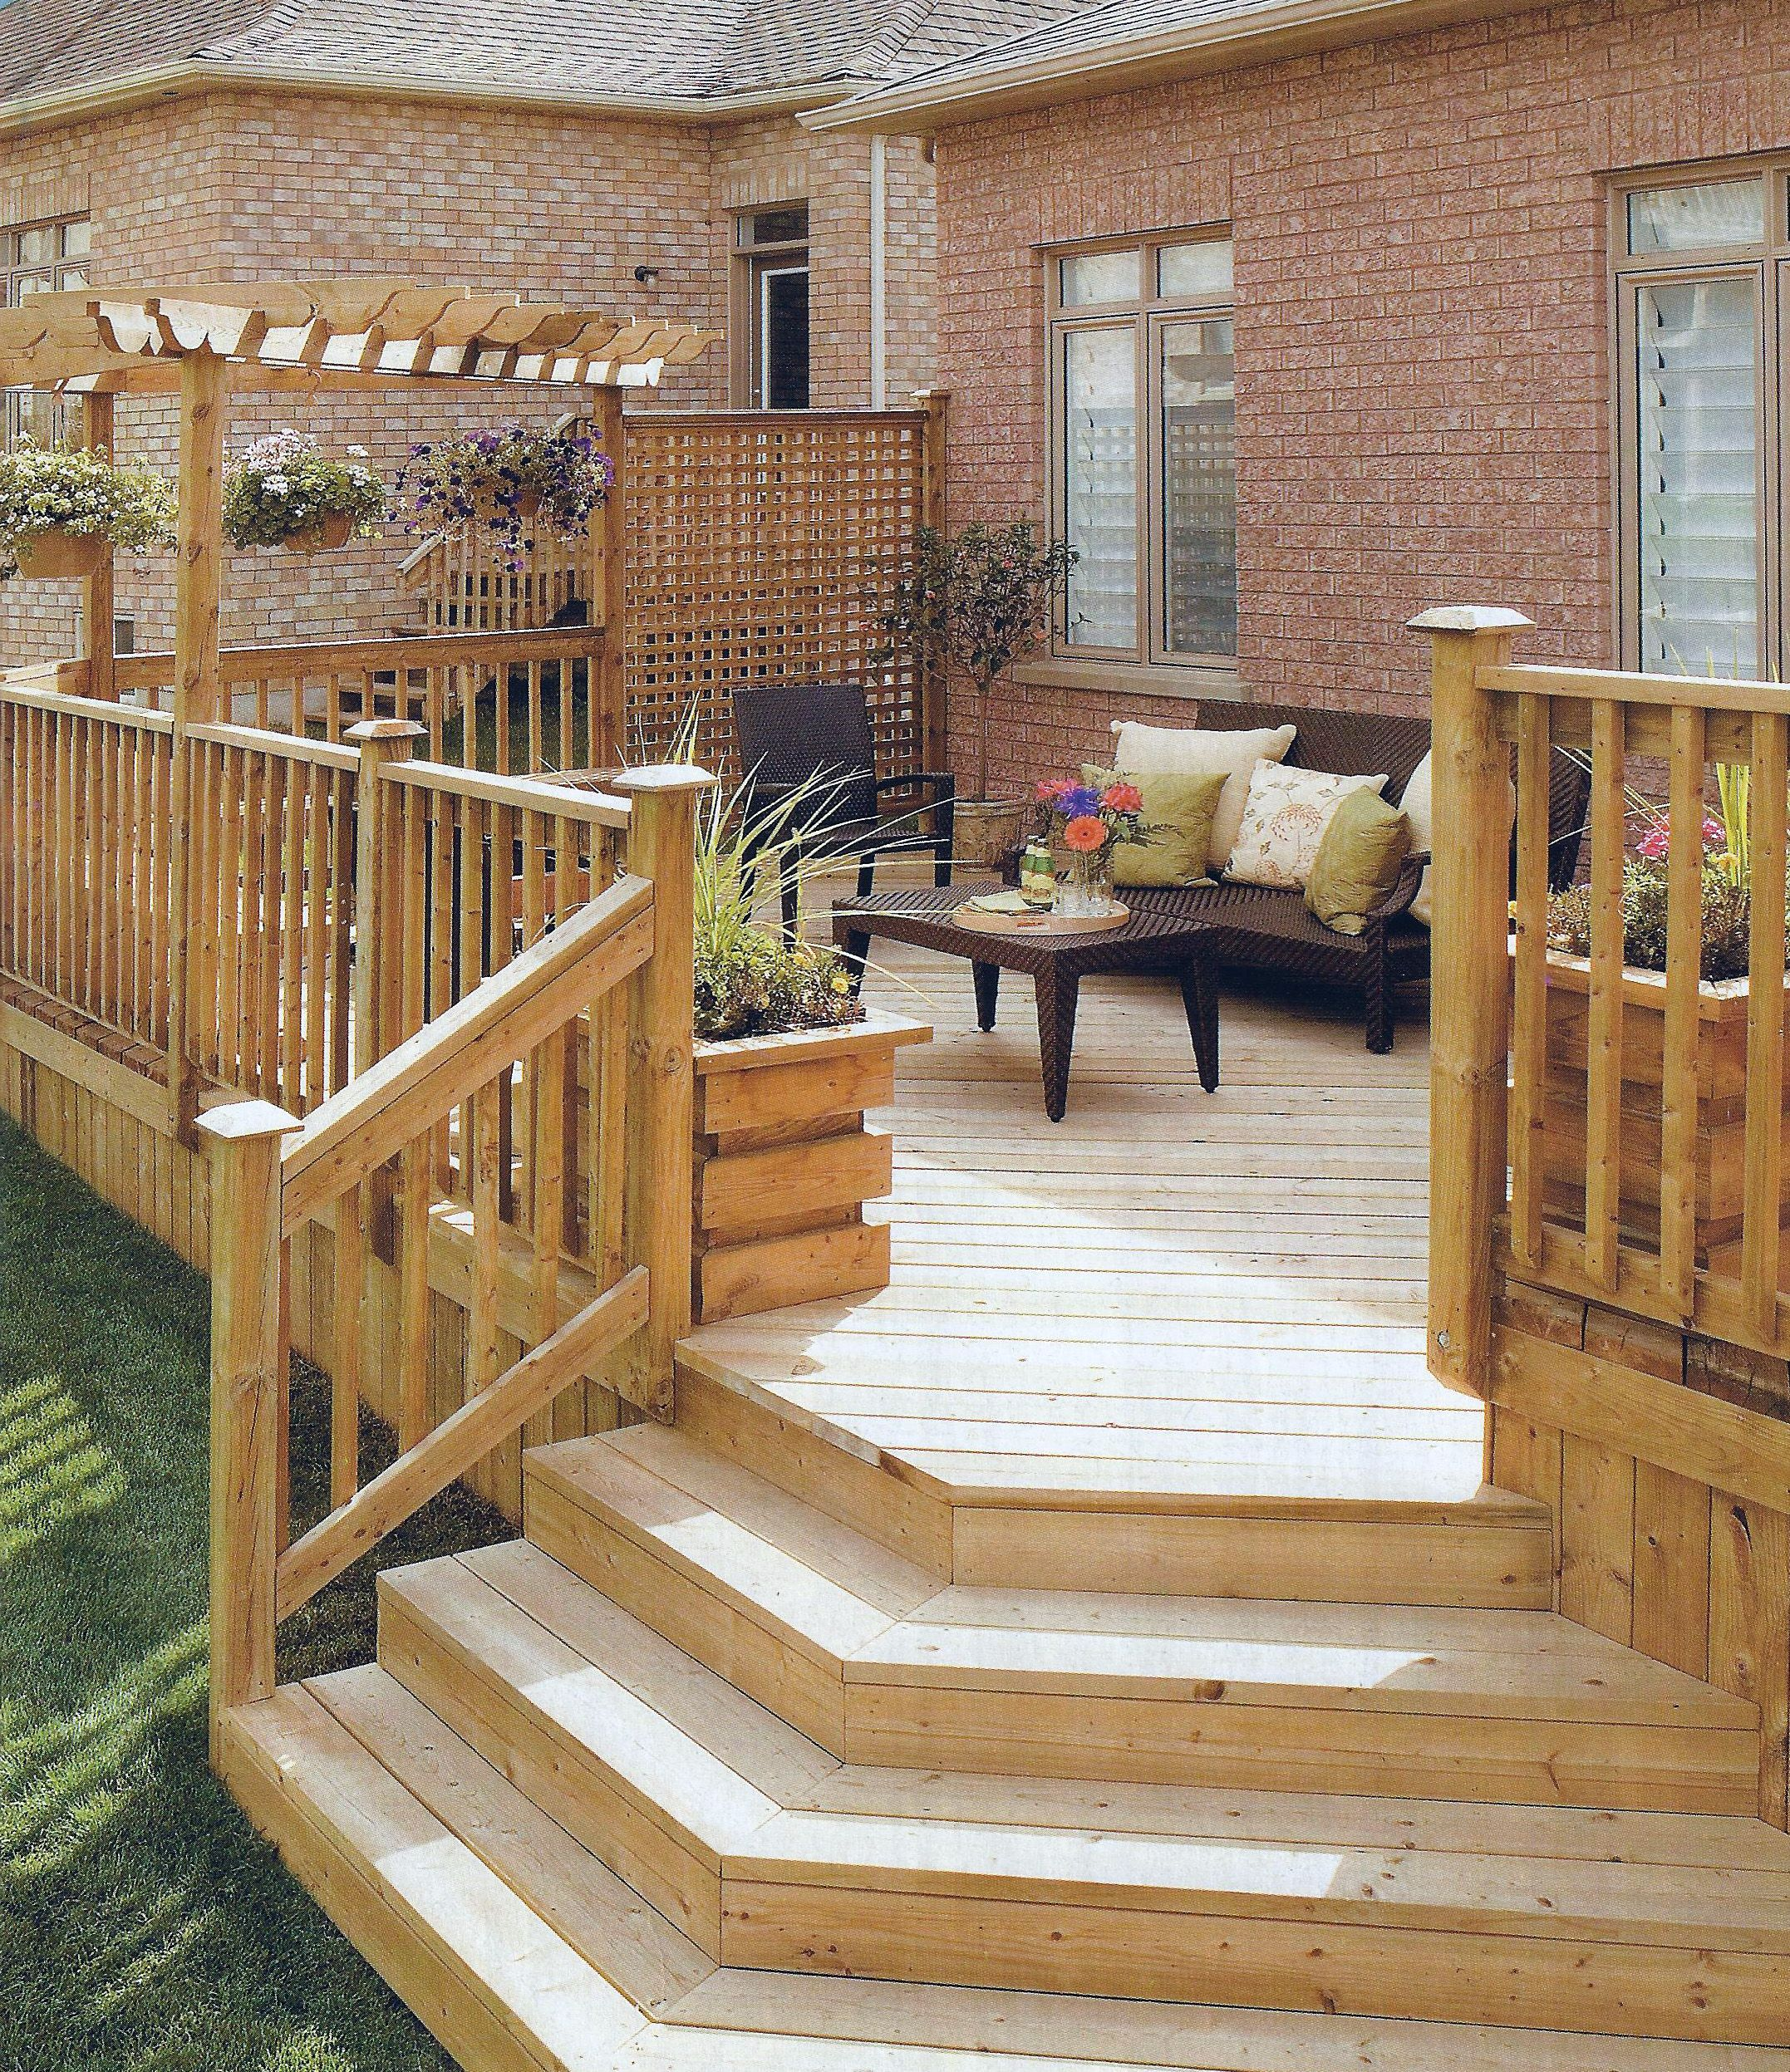 Wooden deck with lattice privacy partition likes stair for Lattice for privacy on patio